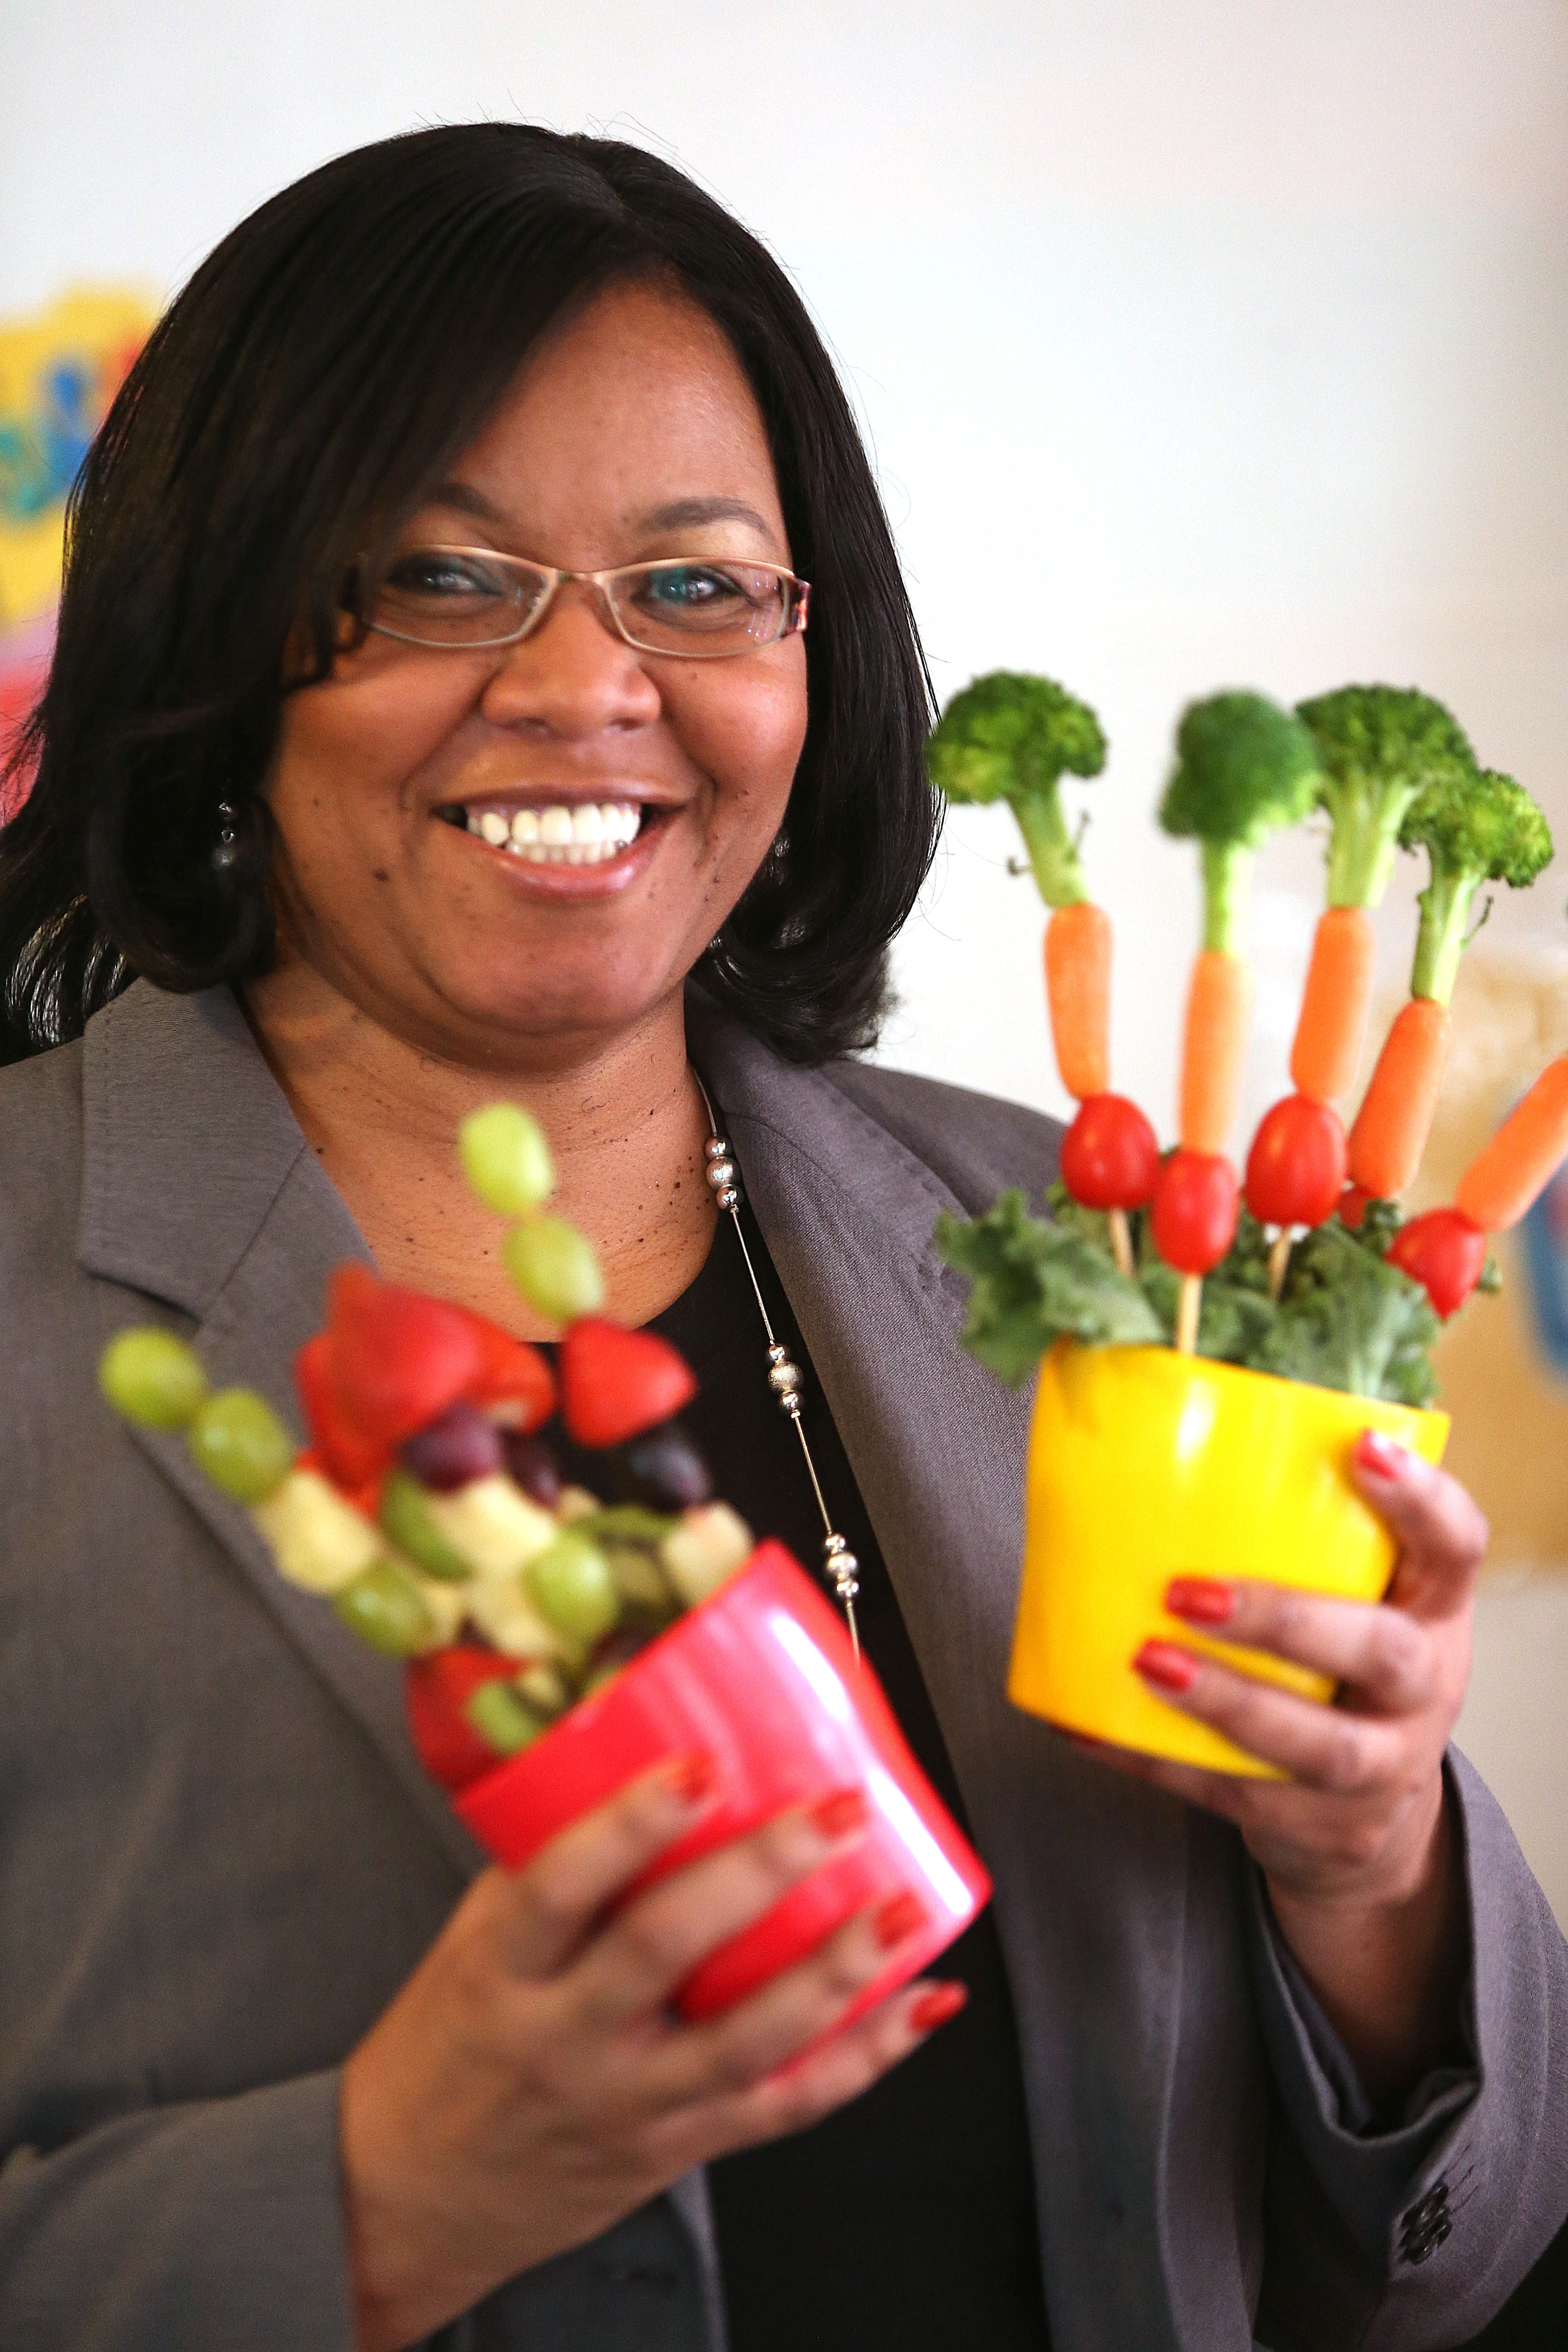 Antoinette Davis with healthy snacks at Something Special Day Care on Monday, March 17, 2014.  (Robert Kirkham/Buffalo News)